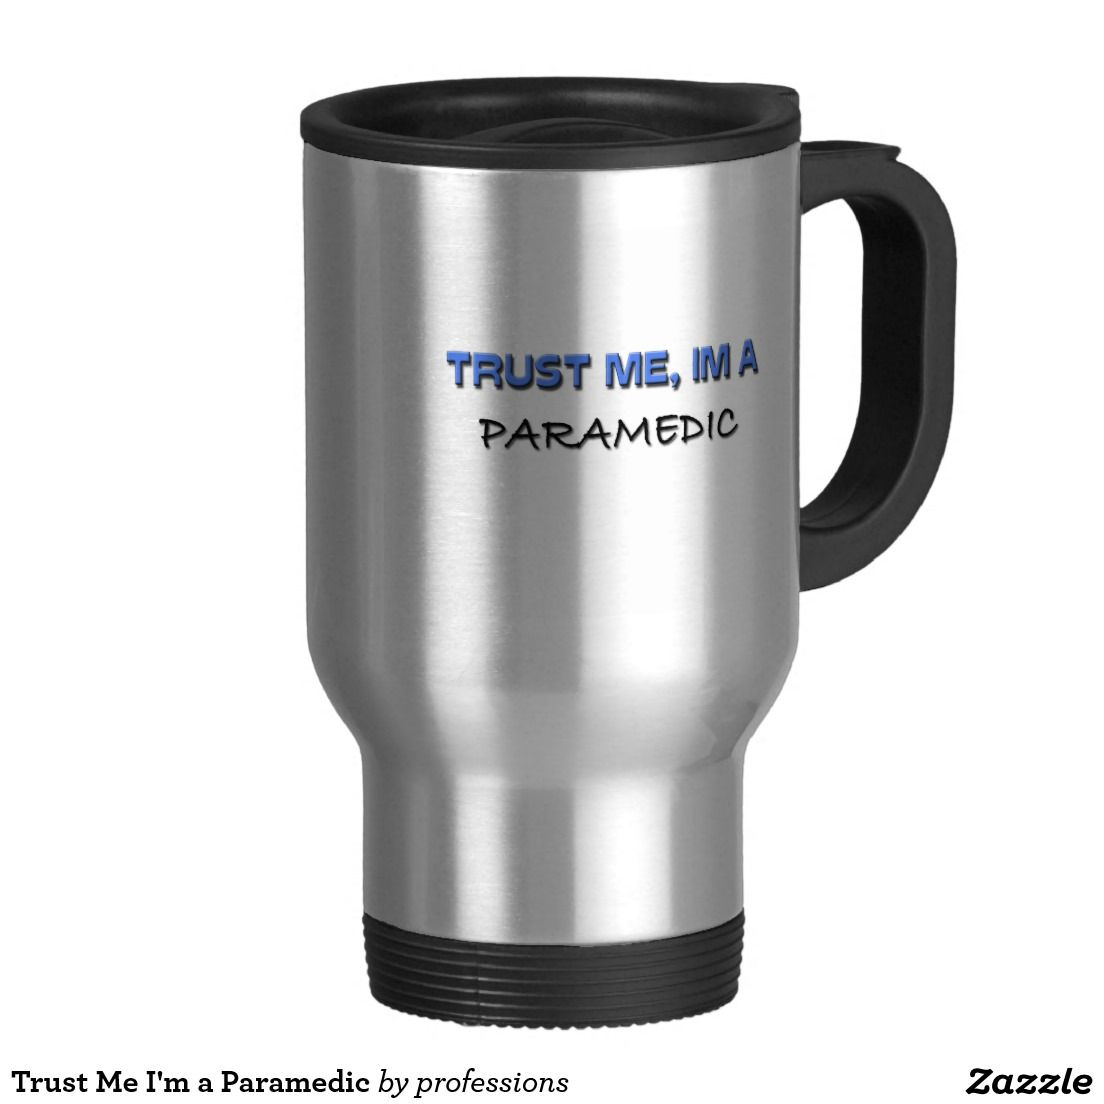 Trust Me I'm a Paramedic 15 Oz Stainless Steel Travel Mug